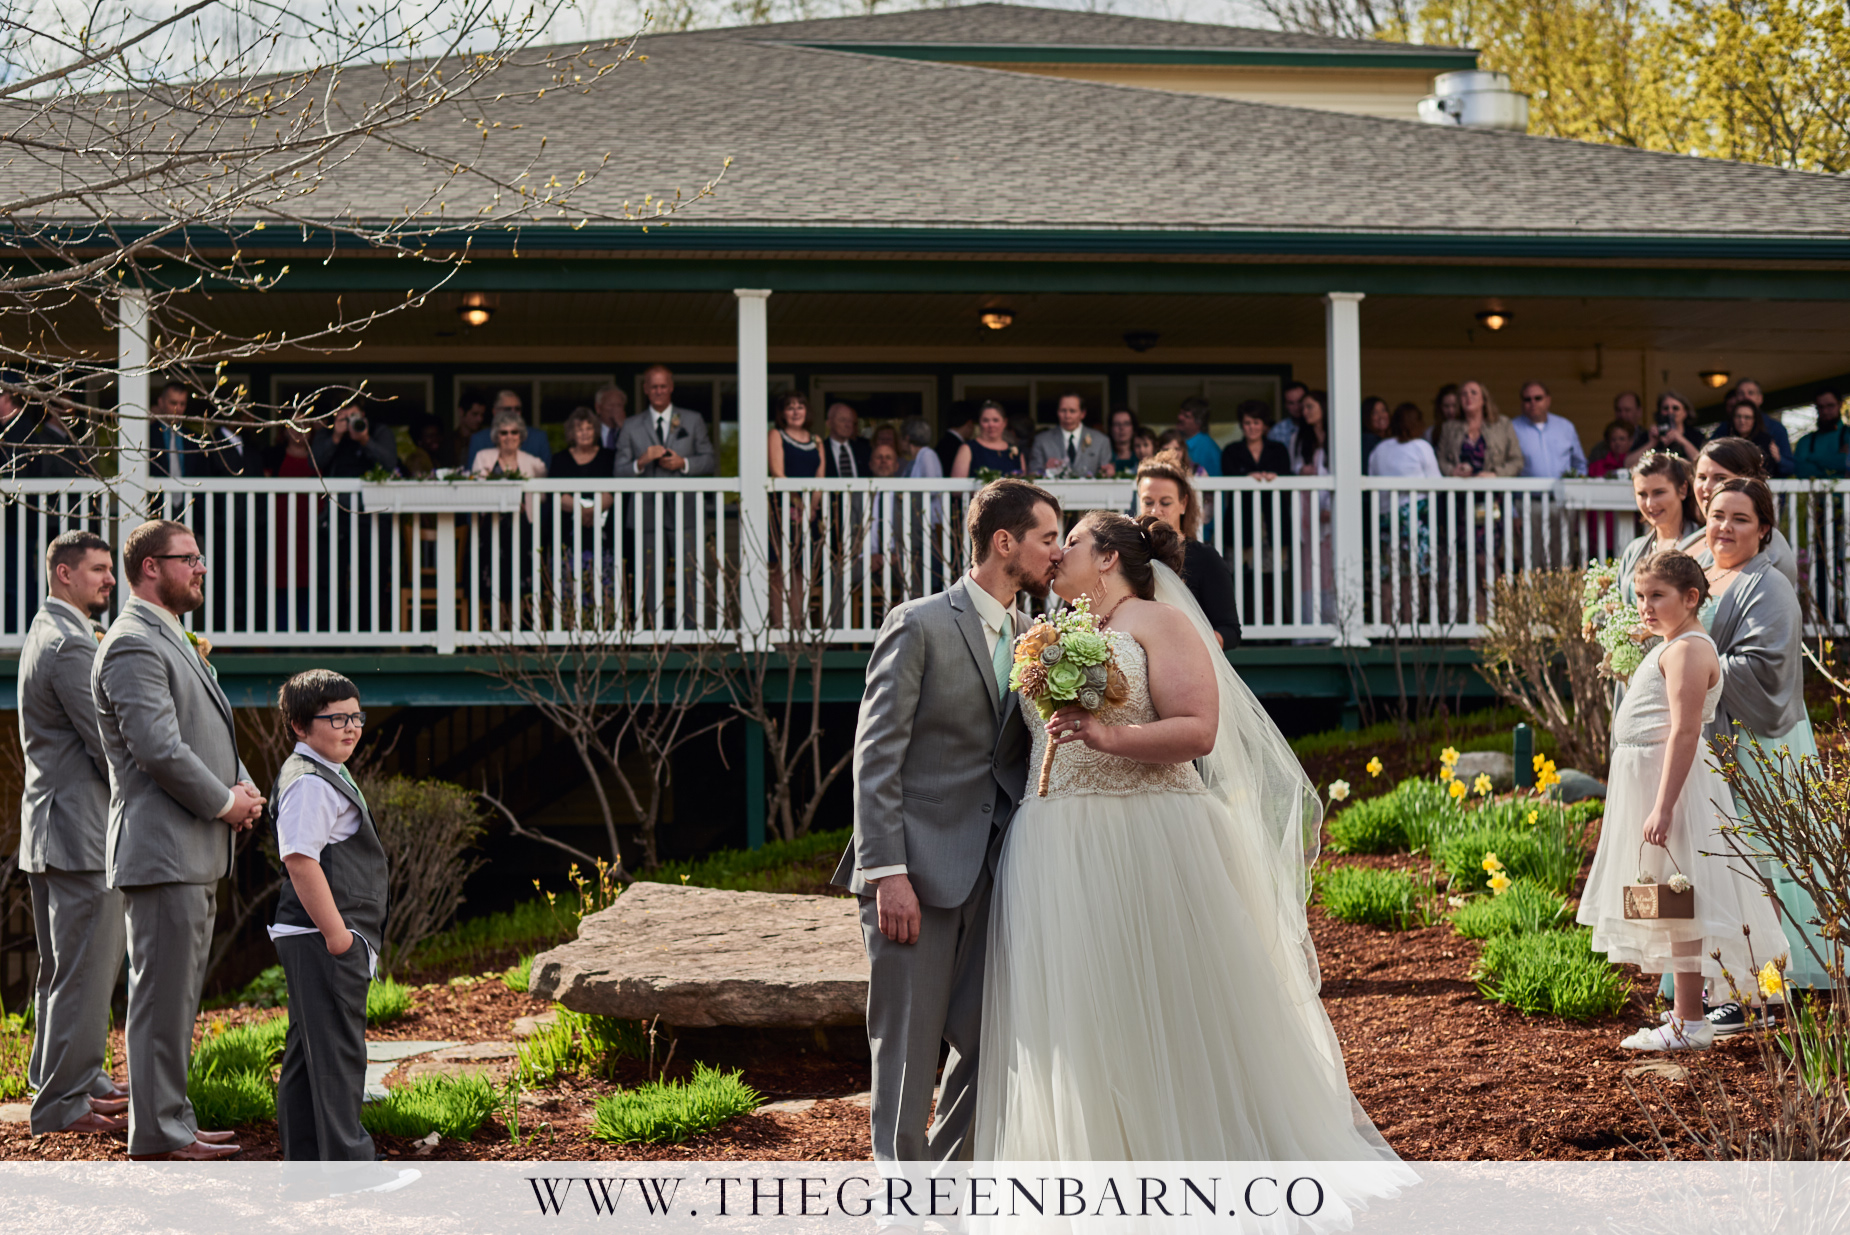 Bride and Groom First Kiss with All Guests Behind the Couple Photo at a Spring Garden Wedding in Vermont